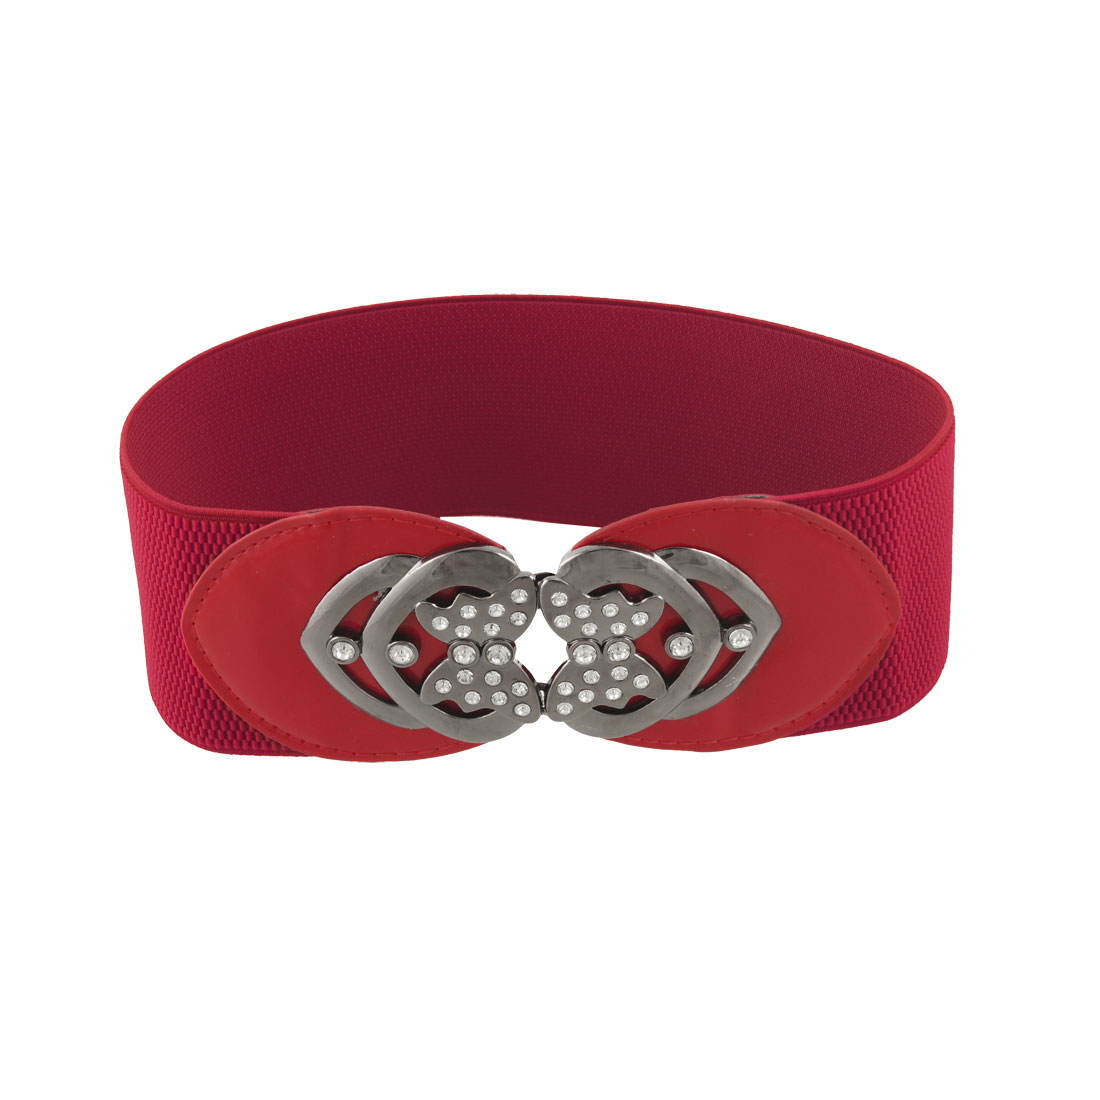 "Lady Butterfly Shape Metal Closure 3"" Width Red Stretchy Cinch Belt"